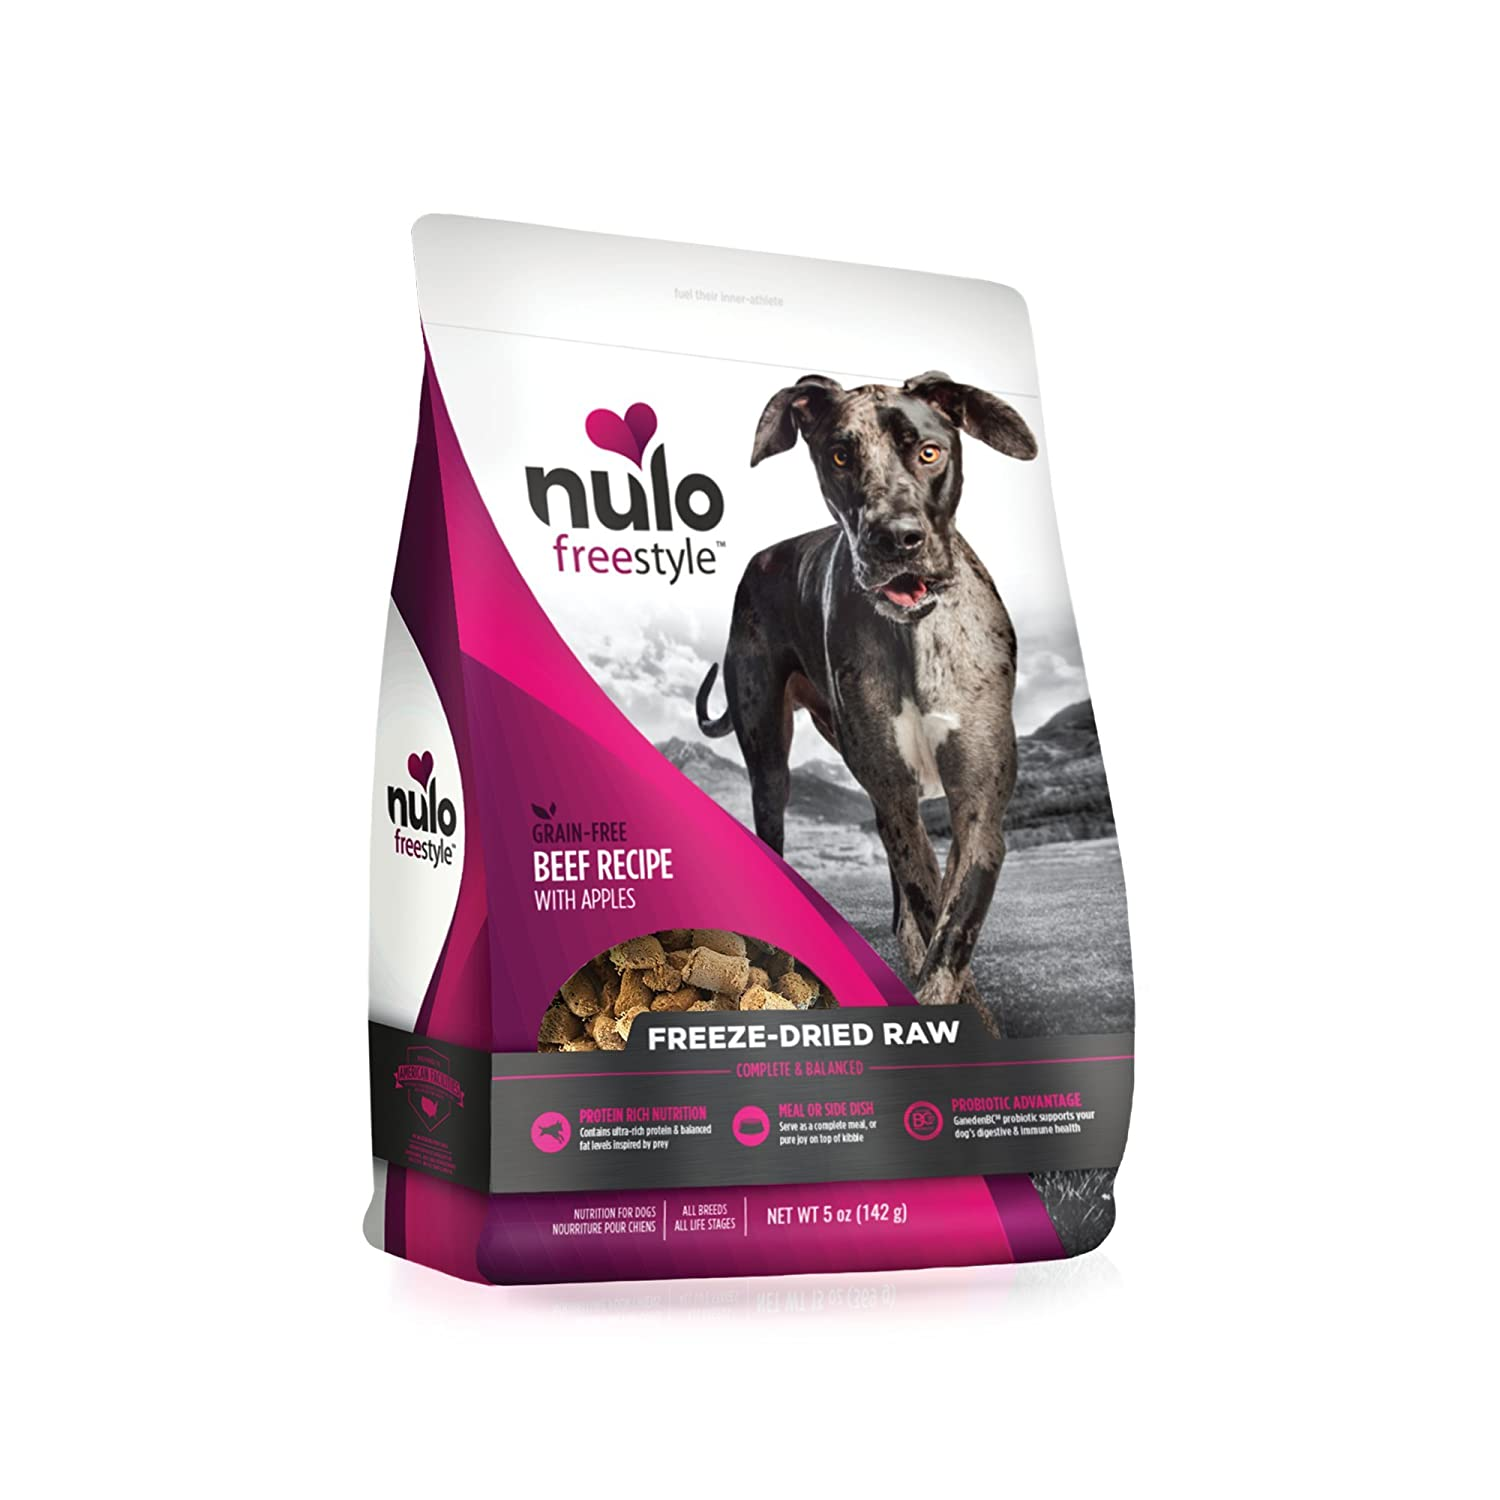 5 oz Nulo Freeze Dried Raw Dog Food for All Ages & Breeds  Natural Grain Free Formula with Ganedenbc30 Probiotics for Digestive & Immune Health Beef Recipe with Apples 5 Oz Bag